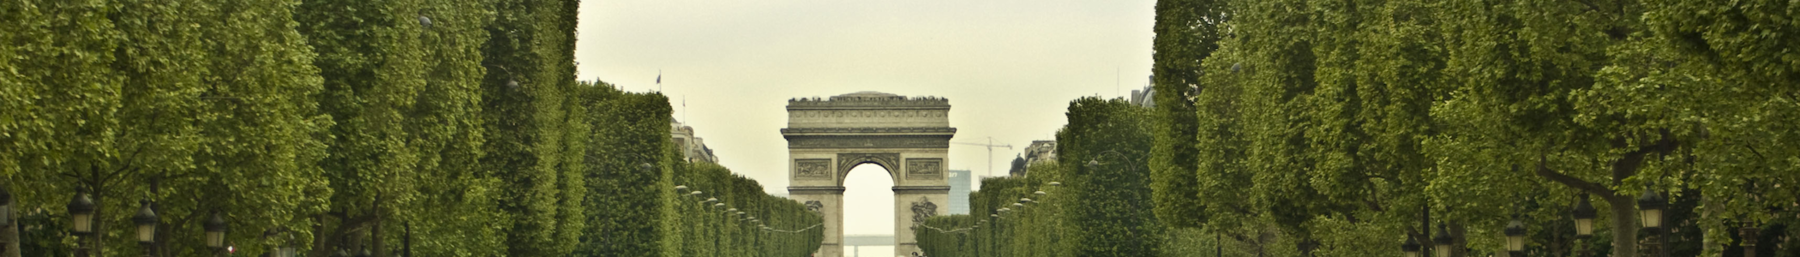 Paris 8e Wikivoyage Banner.png